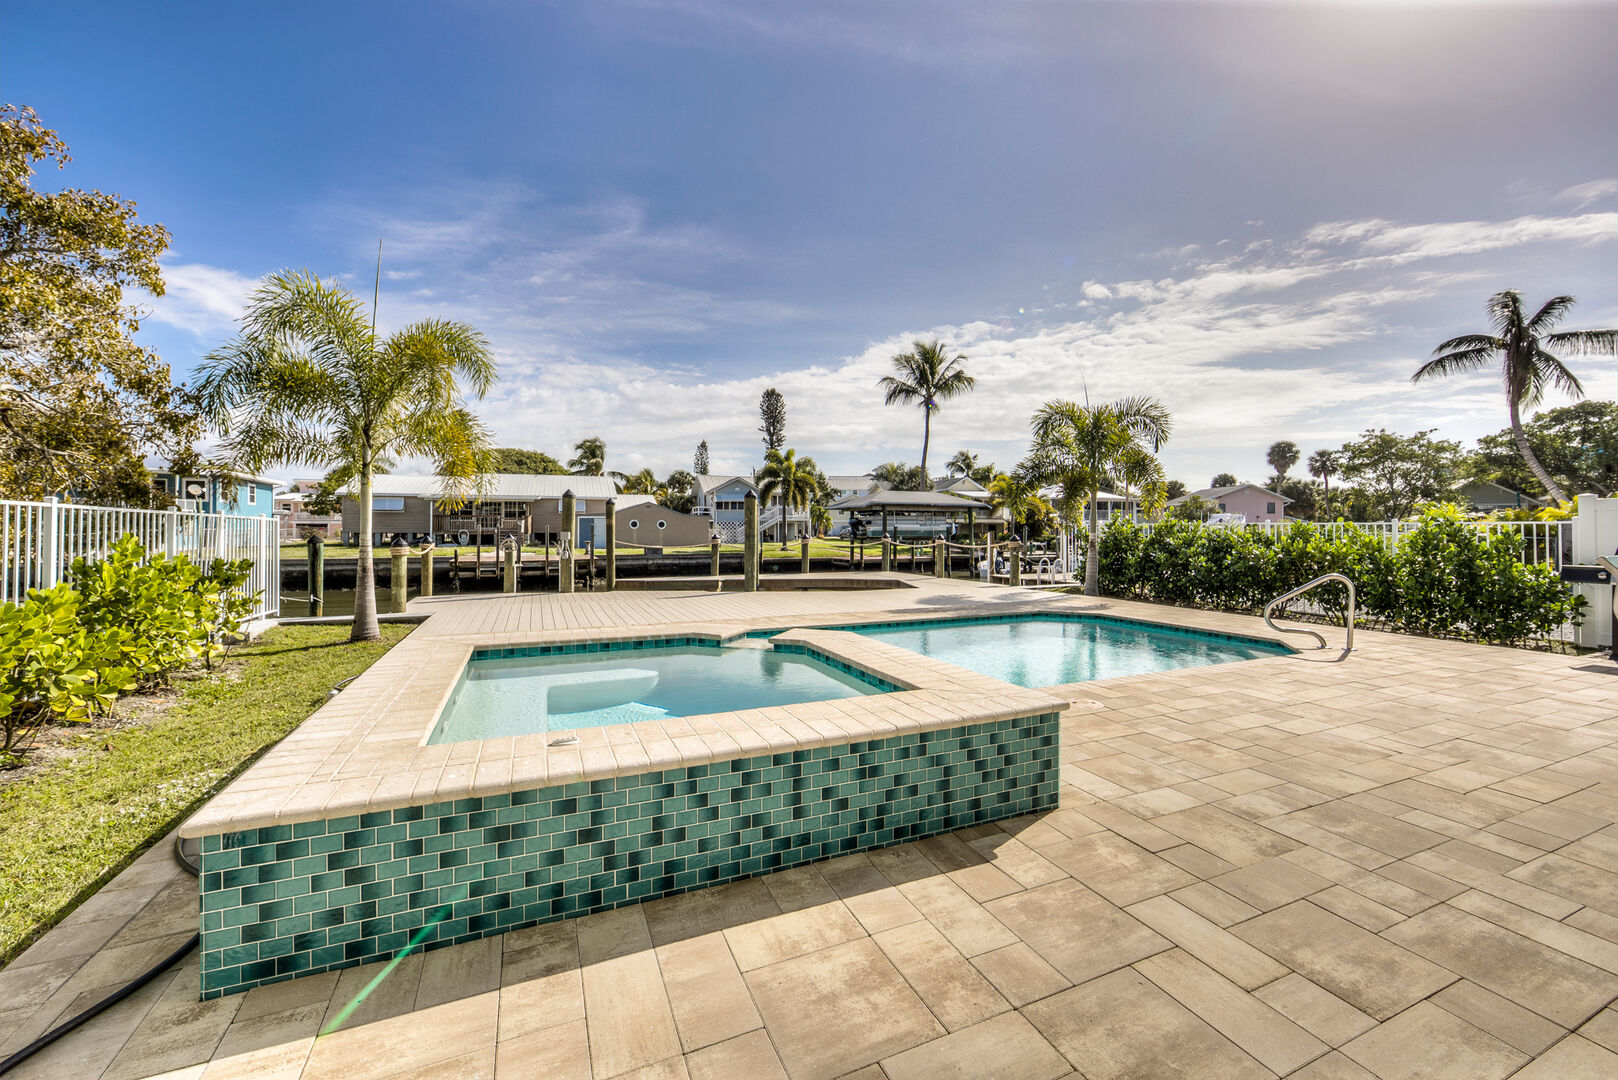 Hot Tub at Vacation Home Rental In Fort Myers Beach Florida